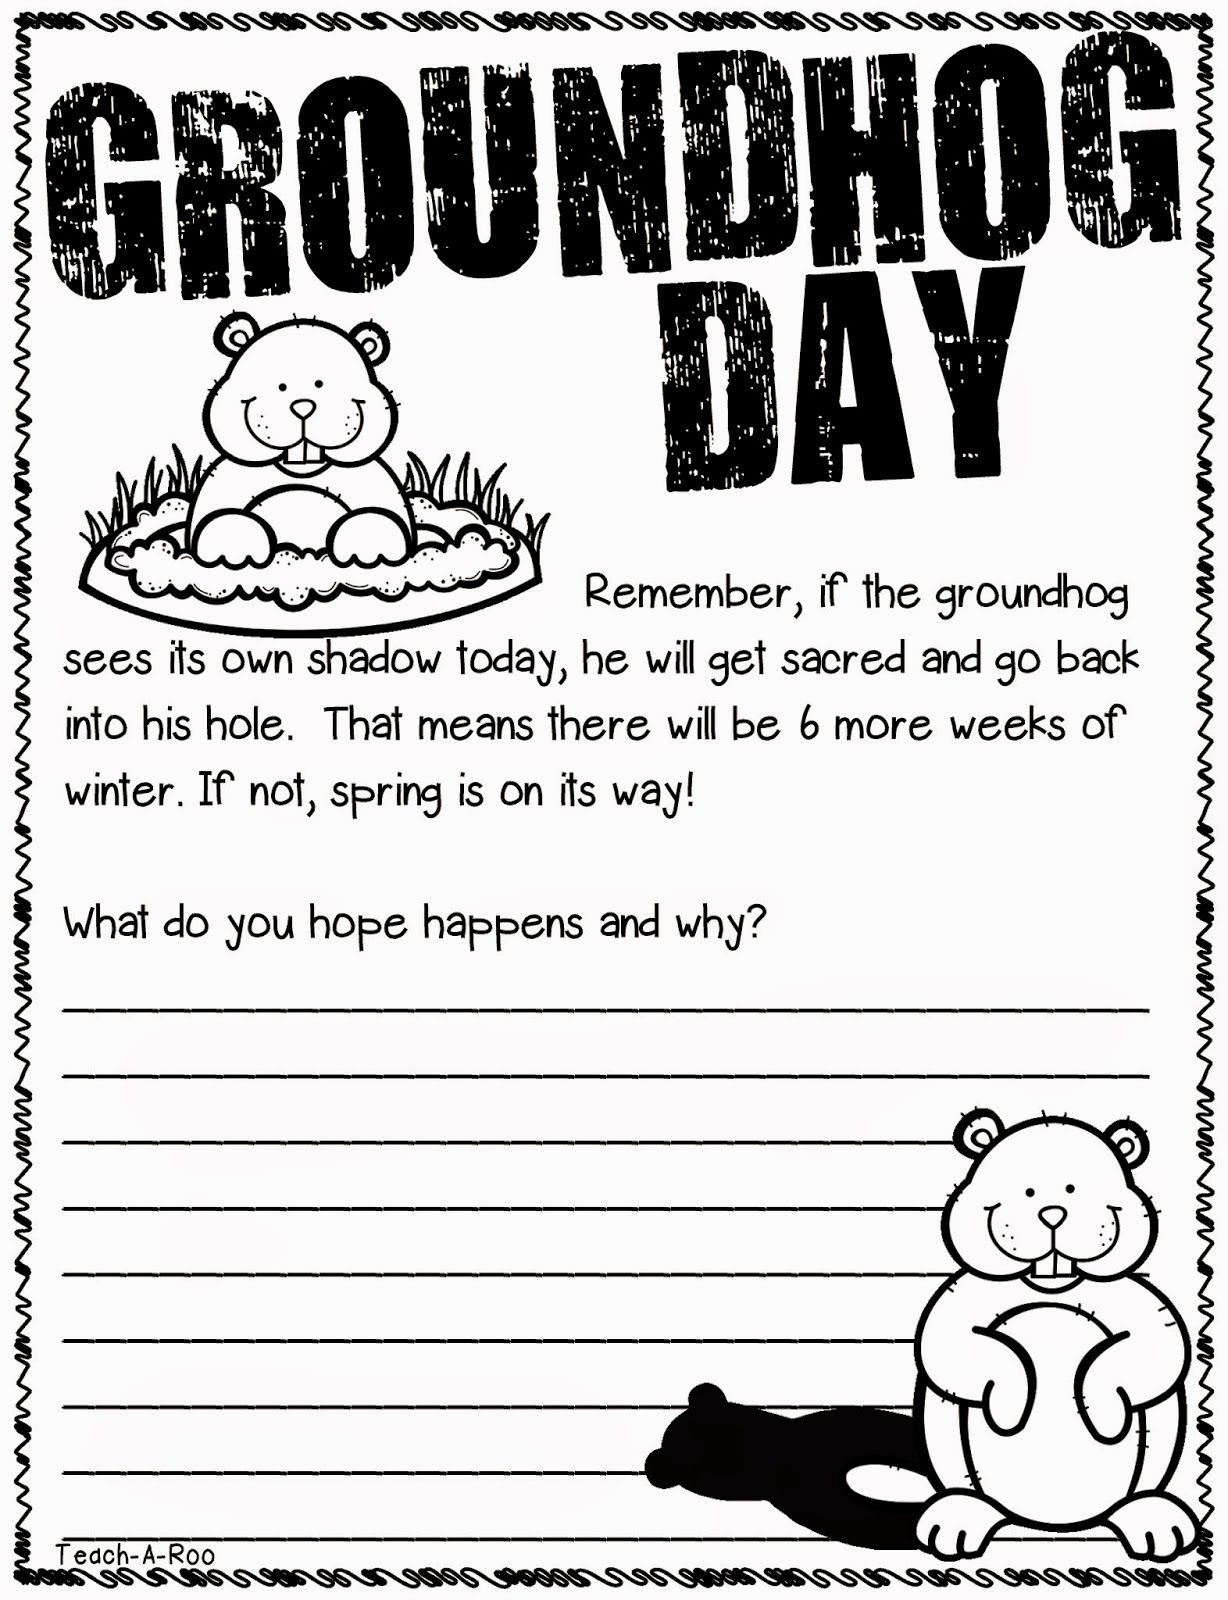 medium resolution of Teach-A-Roo: Groundhogs Make Me Giggle!   Groundhog day